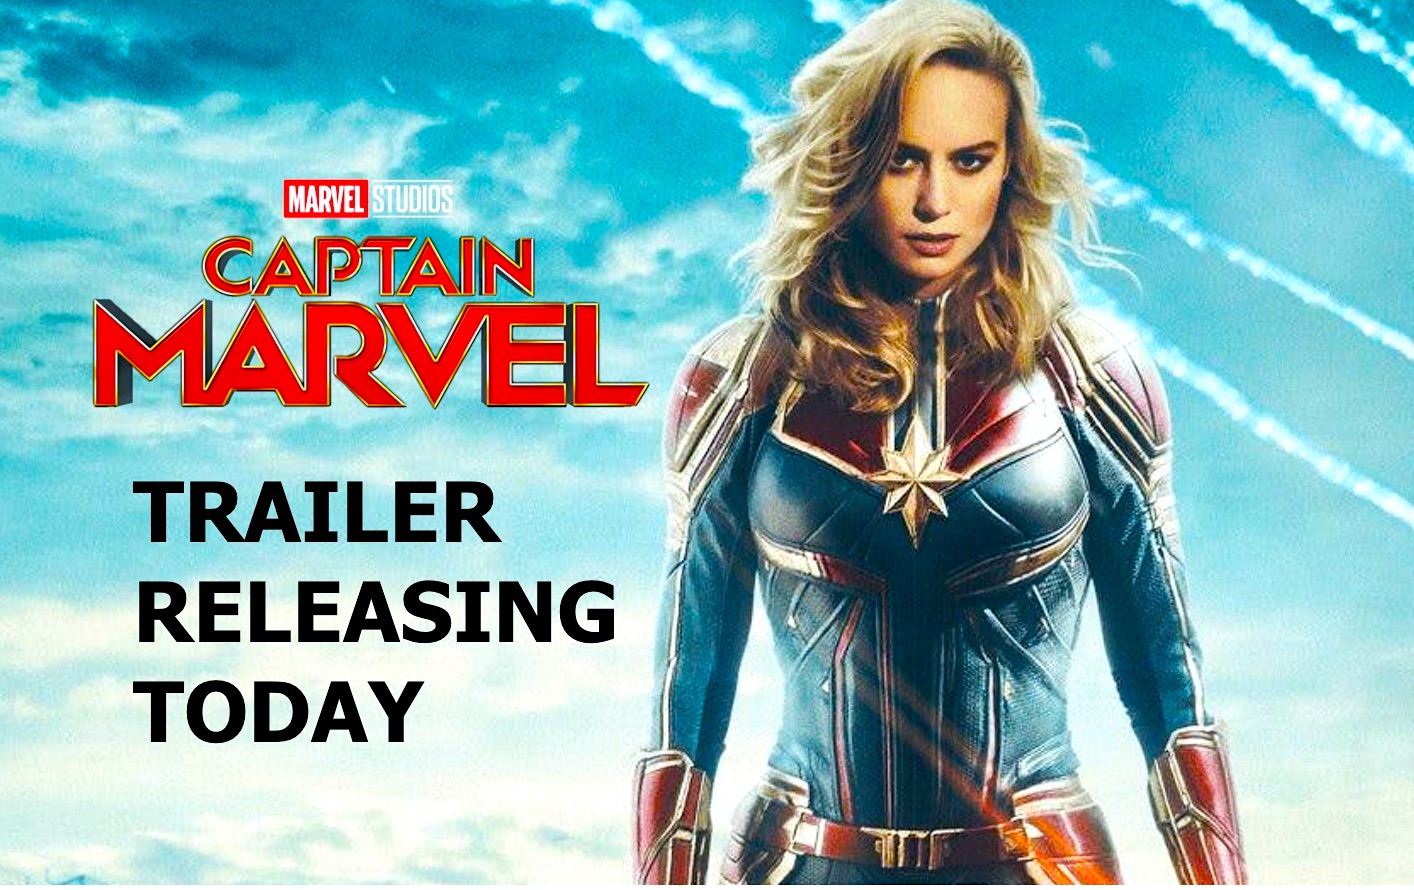 Captain Marvel Trailer Reaction: When Can I Buy Tickets?